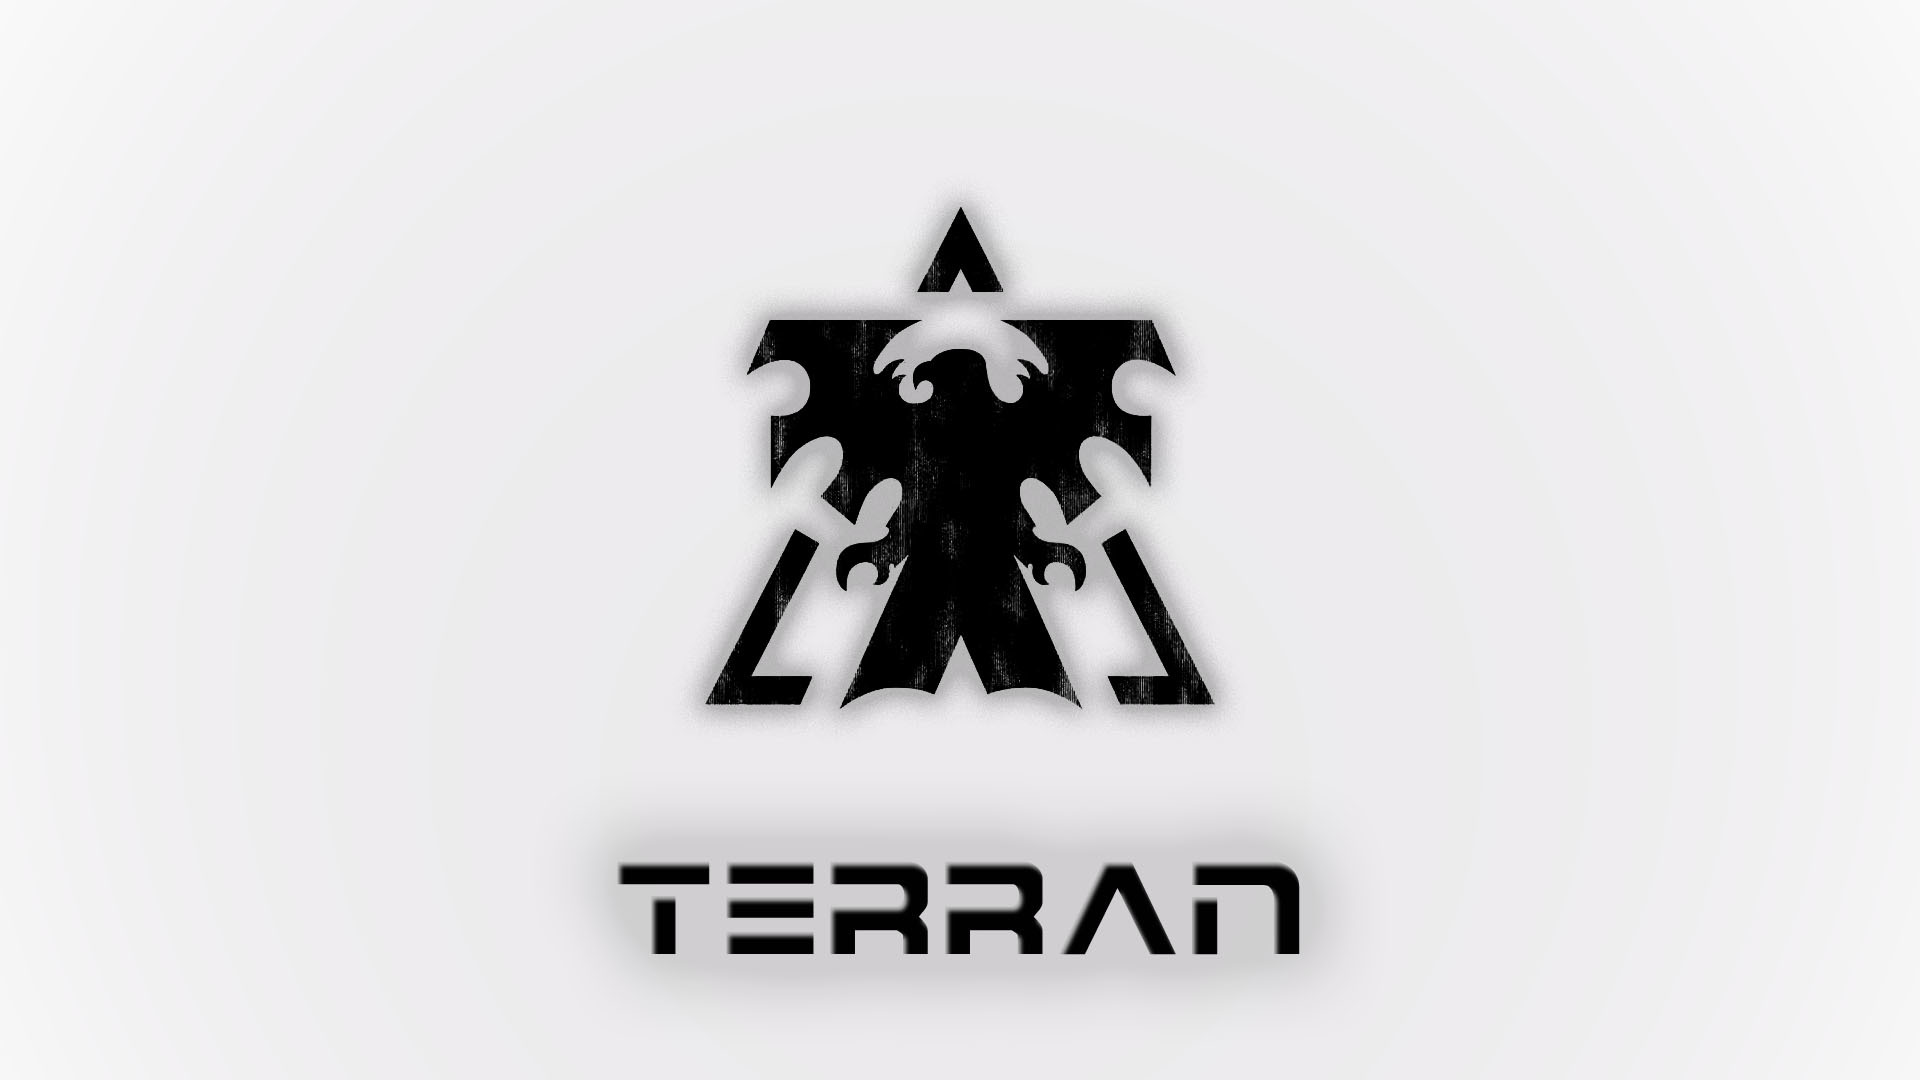 video games starcraft Terran HD Wallpaper